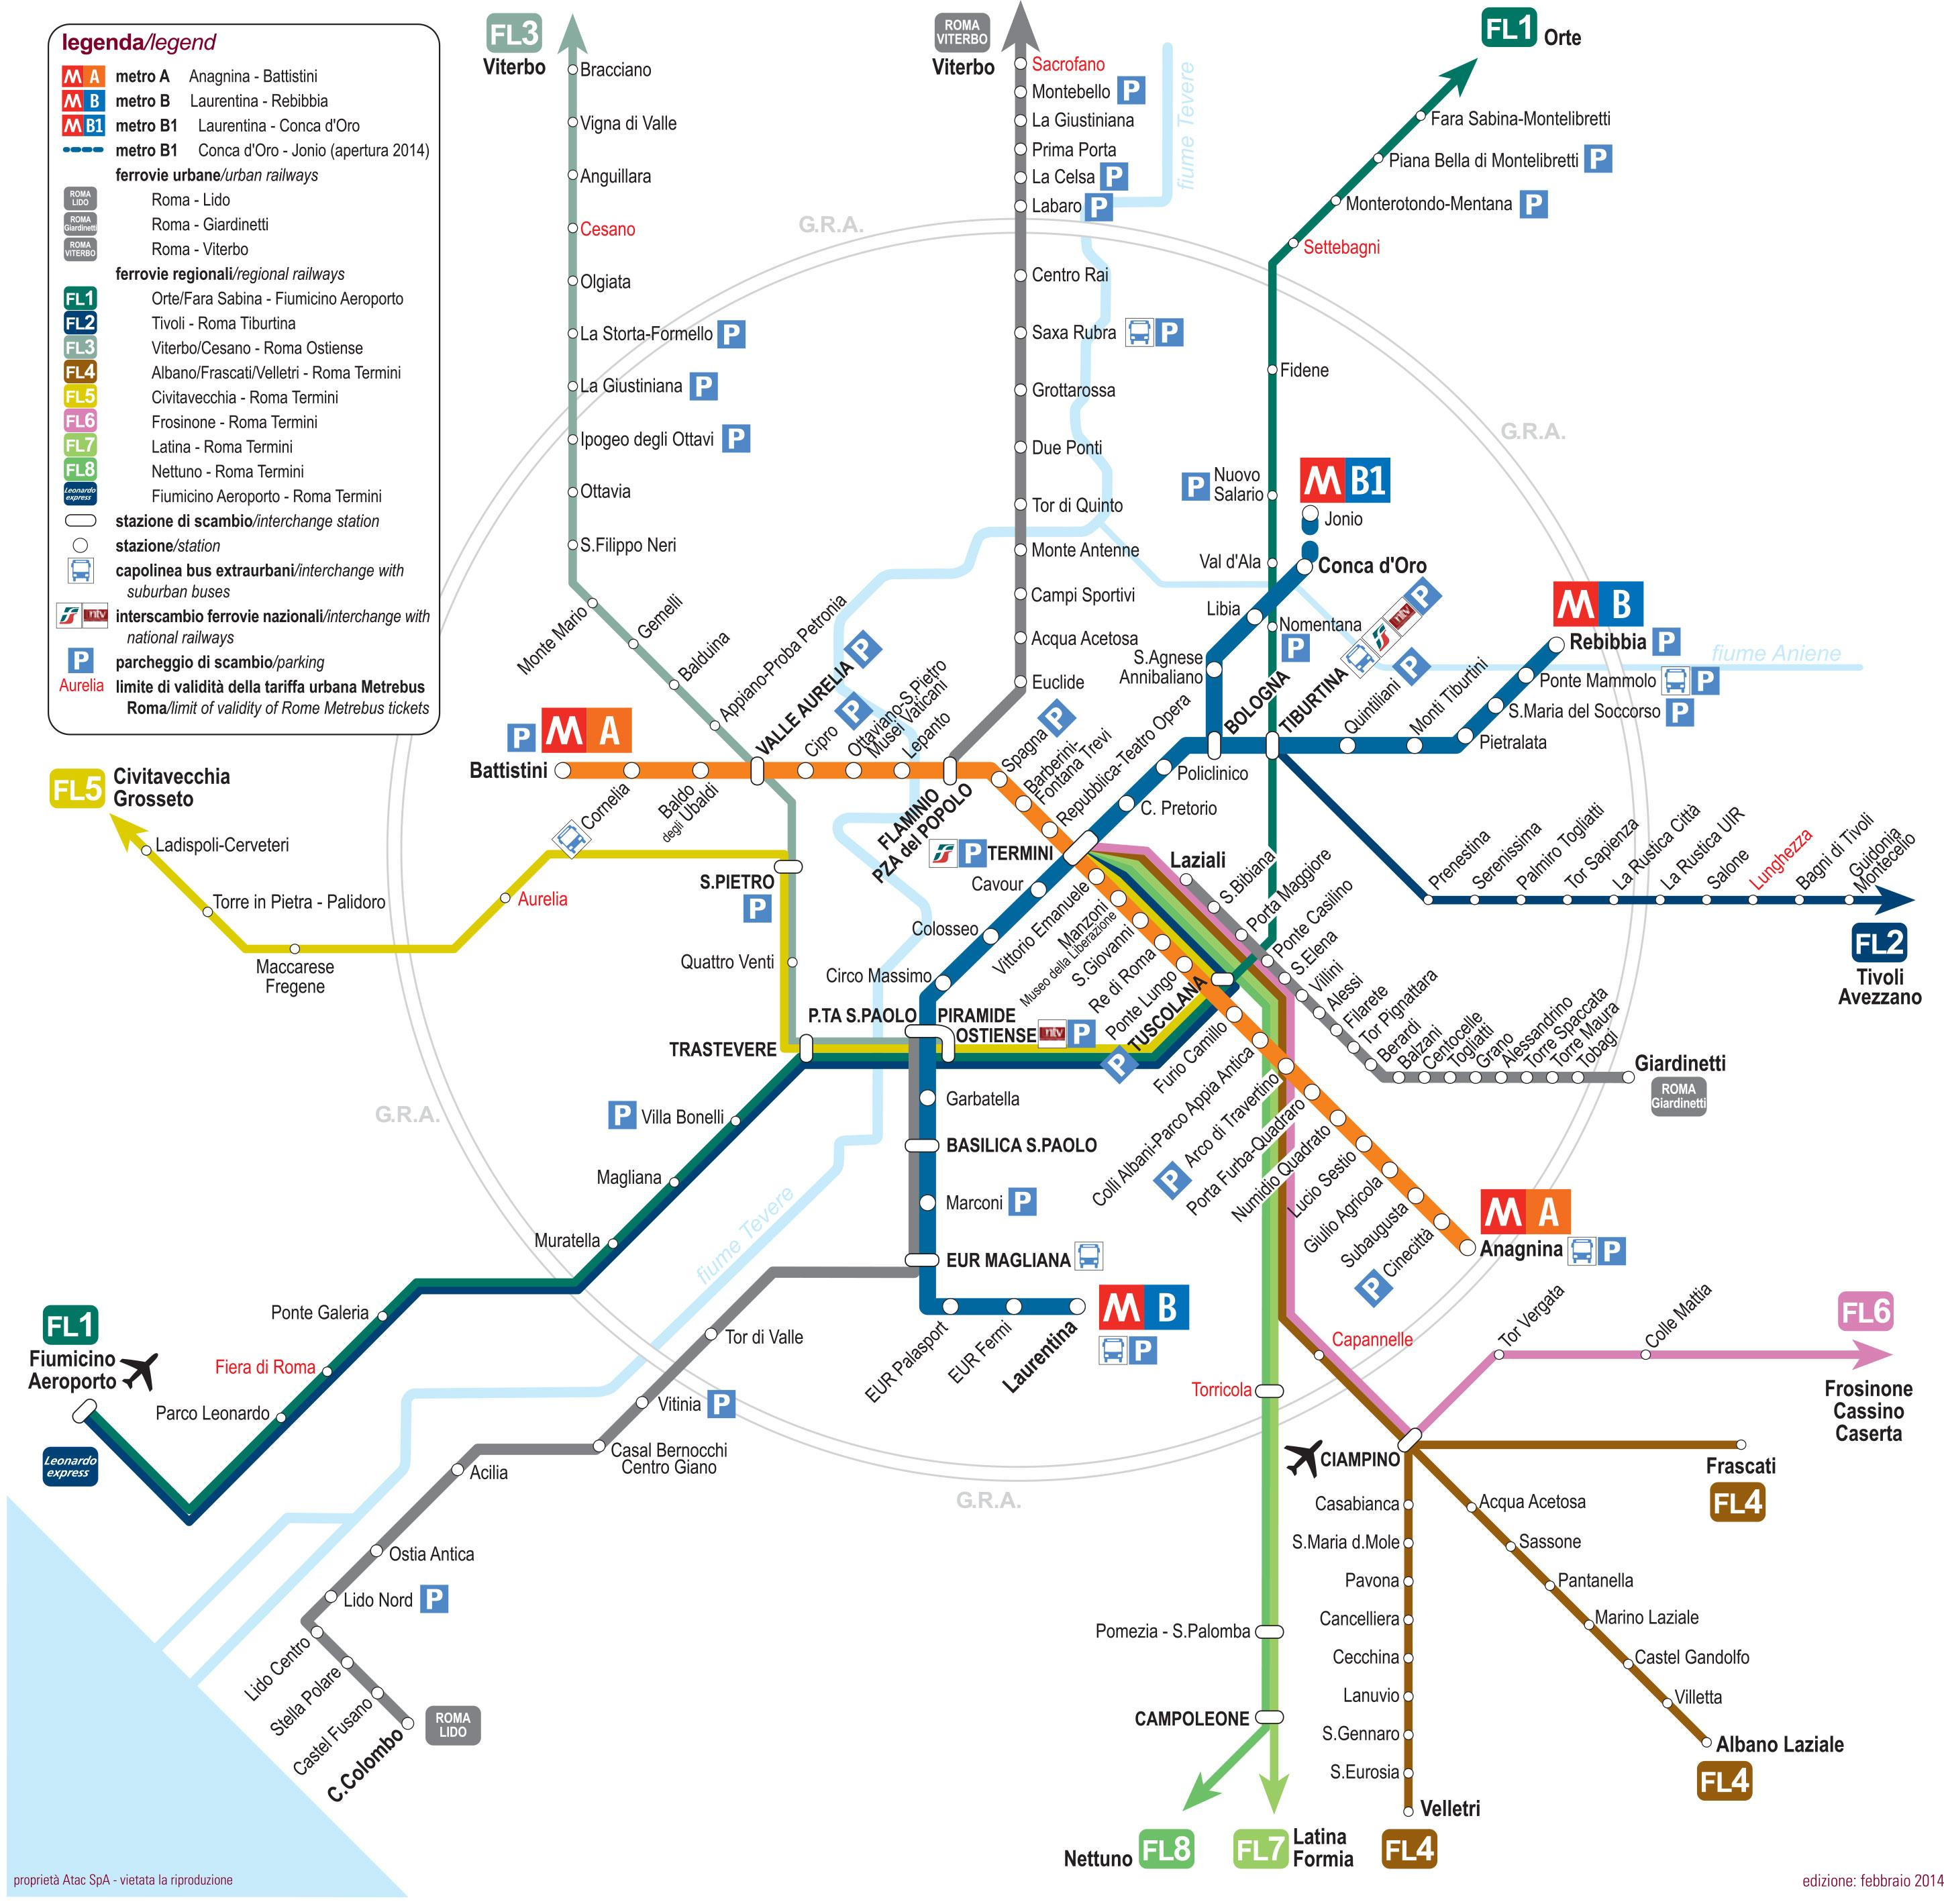 Map Of Italy Train Stations.Rome Train Stations On Map Rome Railway Station Map Lazio Italy